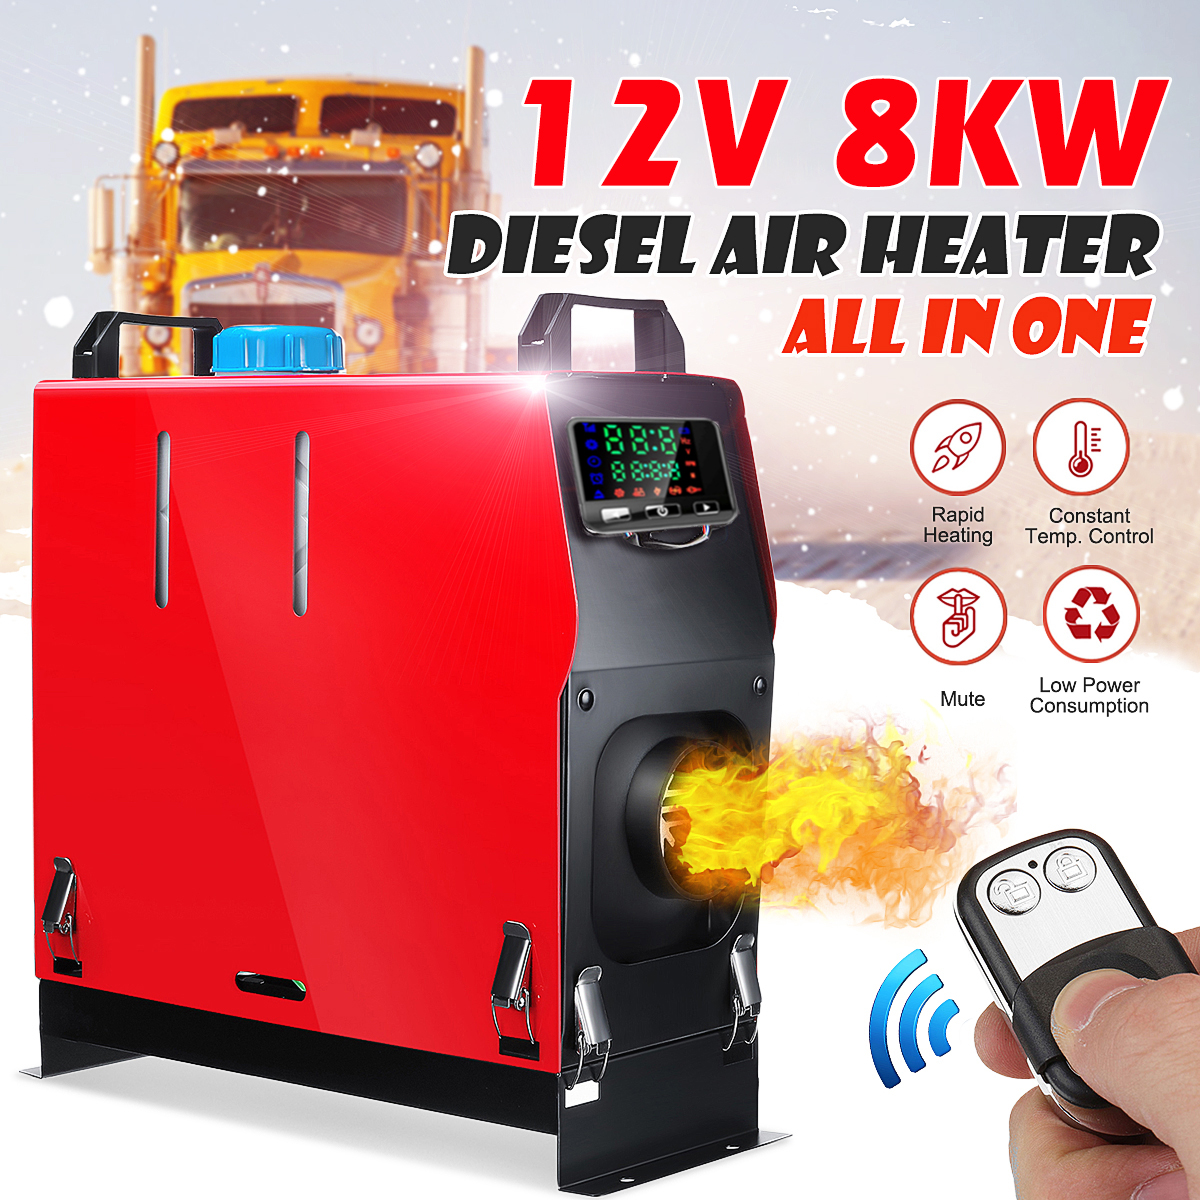 Hcalory Car Heater All In One 1-8kW Air Diesels Heater Red 8KW 12V One Hole For Webasto Trucks Motor-Homes Boats Bus+LCD Switch